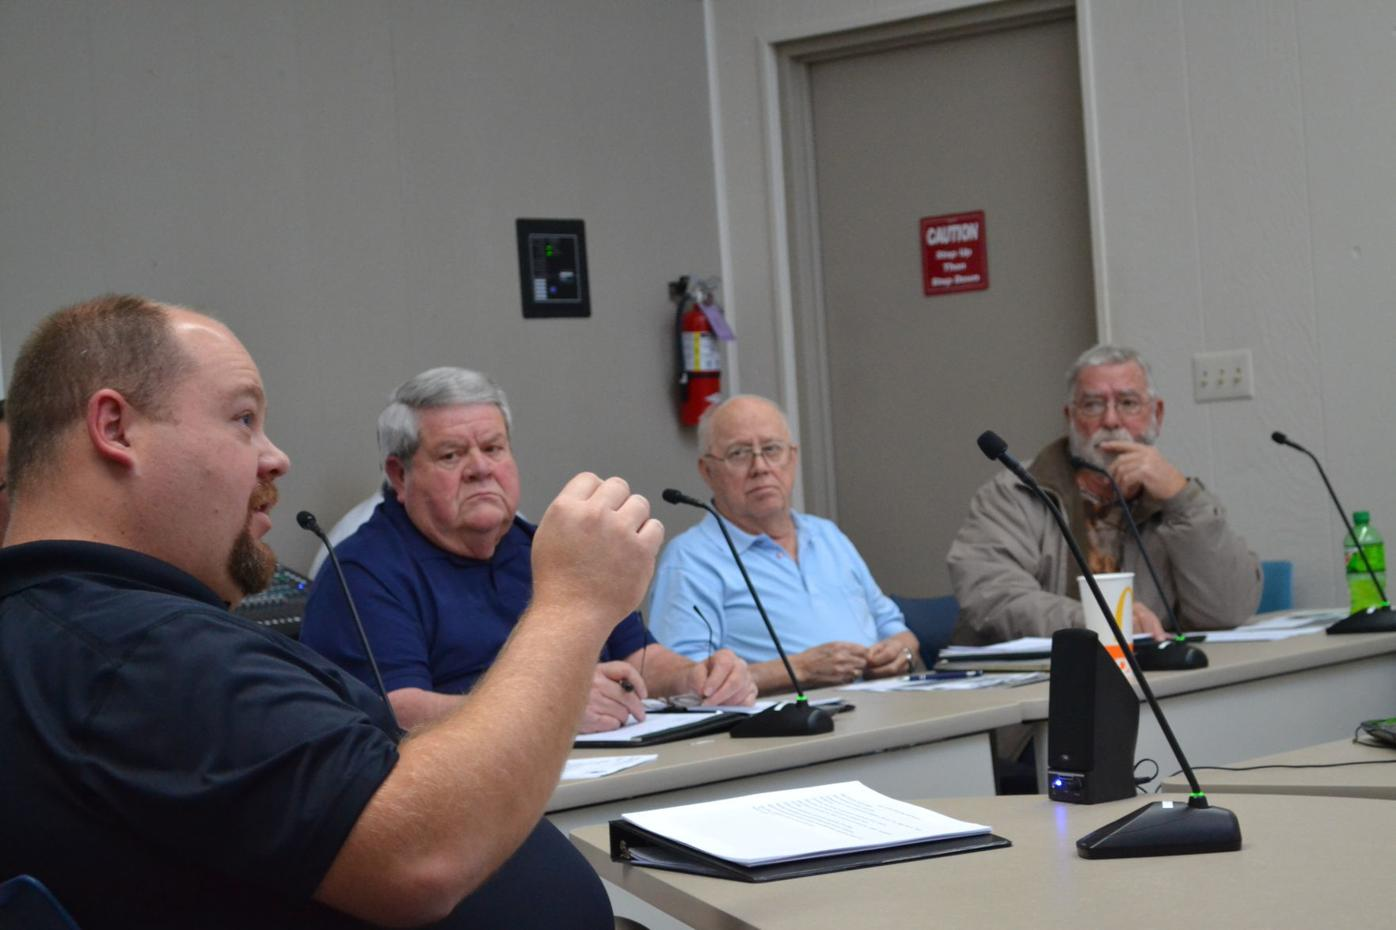 Public safety committee considering new Hawkins Co. emergency communication equipment after major malfunctions